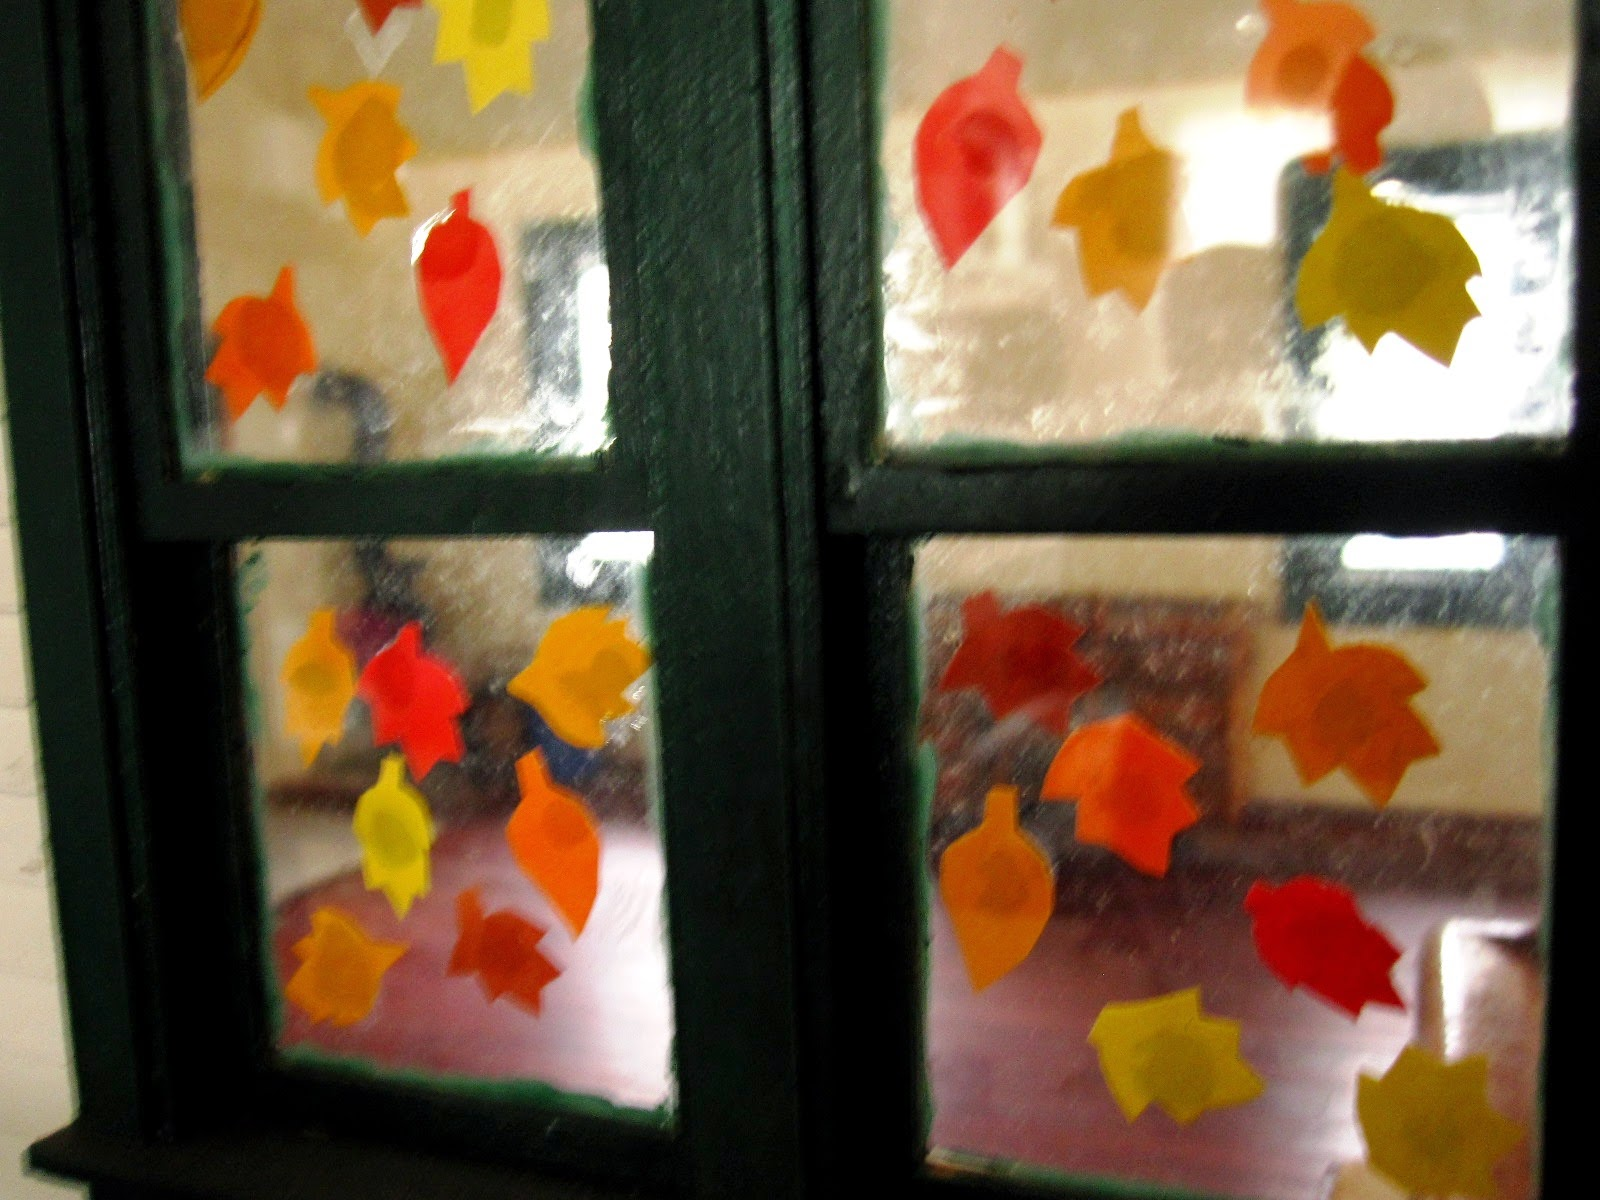 View of an empty vintage miniature school from outside the windows, which have paper autumn leaves stuck on them.